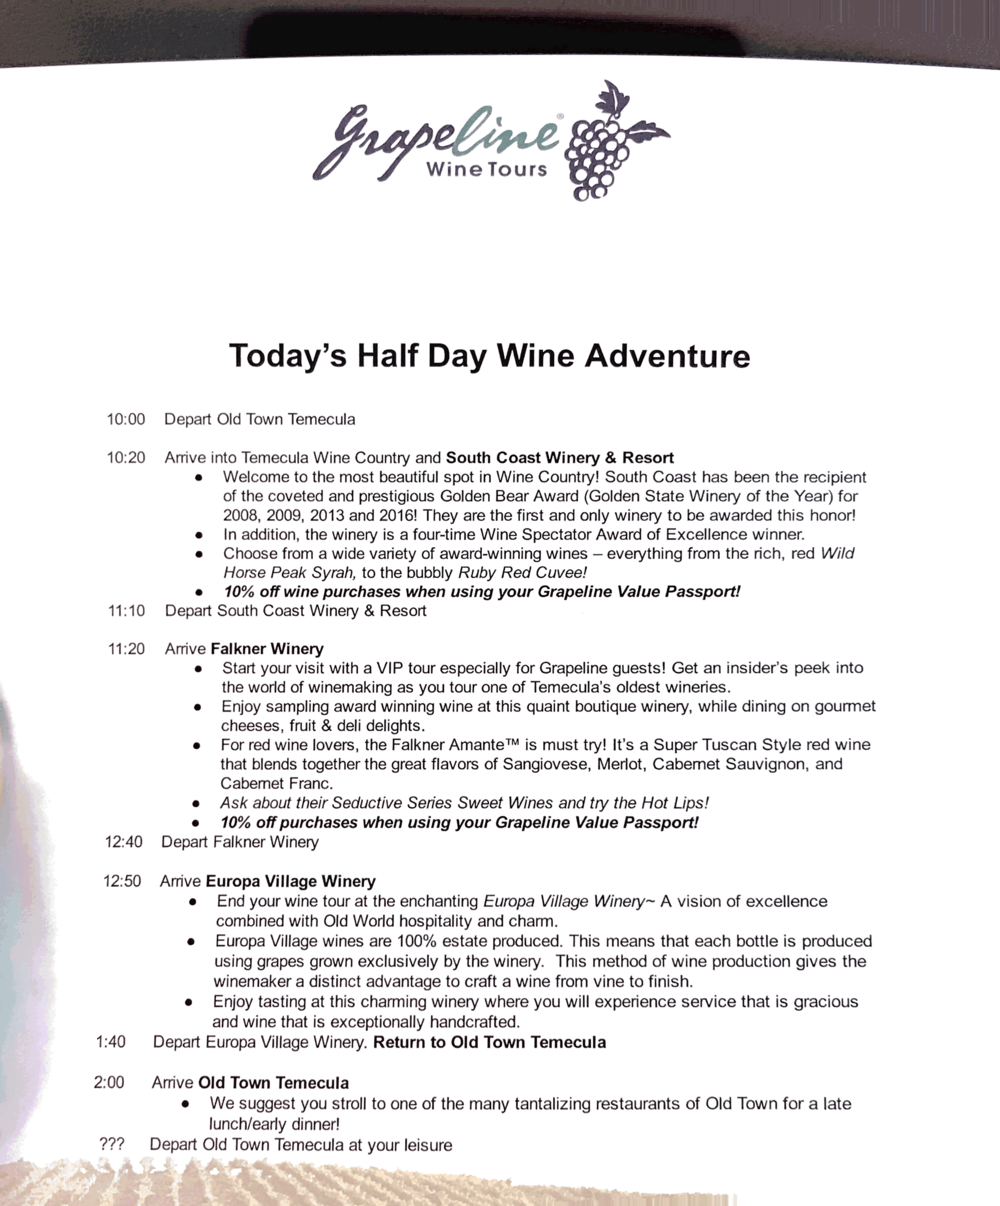 OUR WINE TOUR ITINERARY FOR THE DAY.